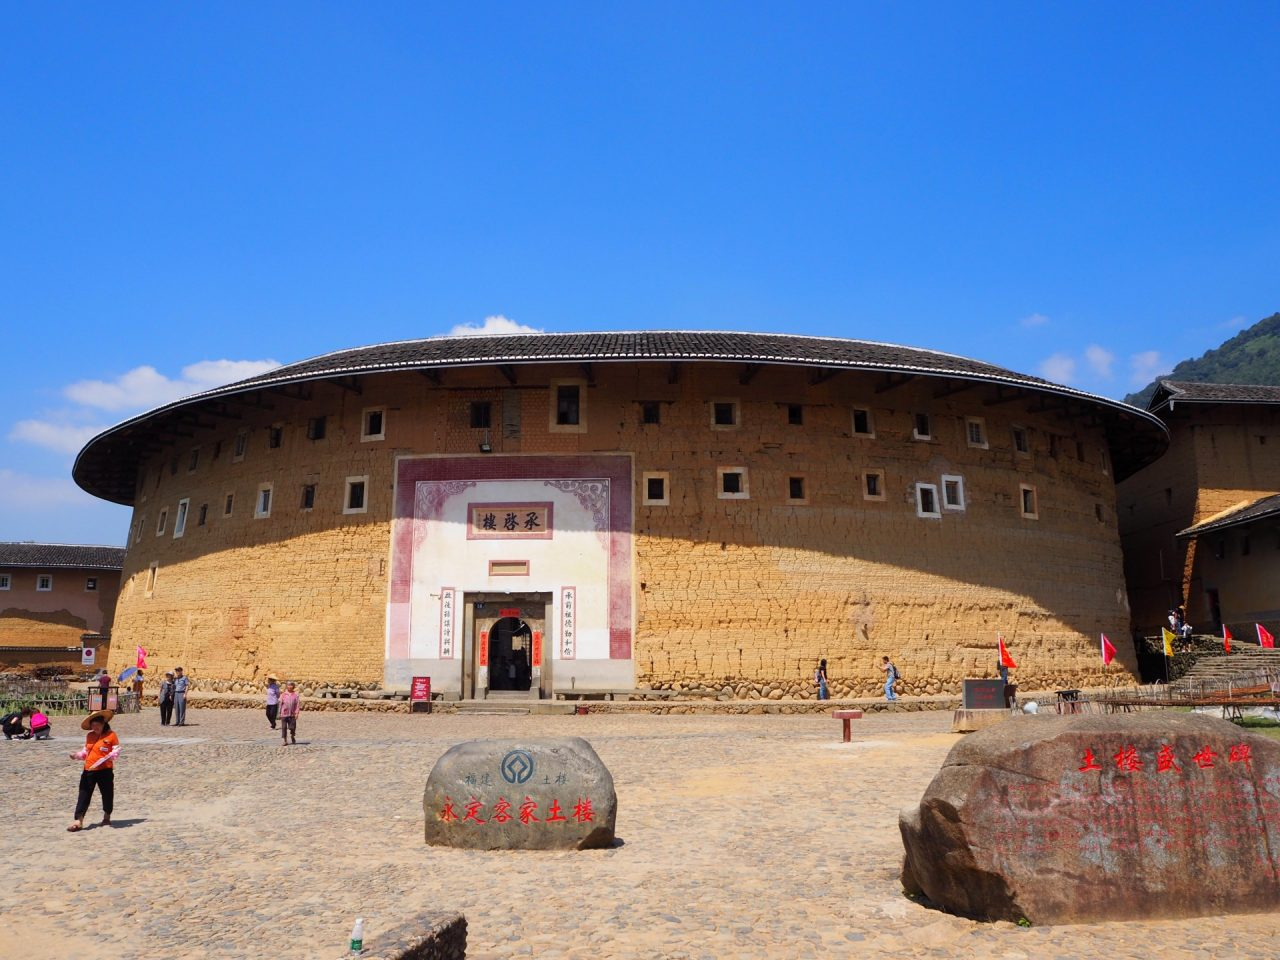 King of Tulou